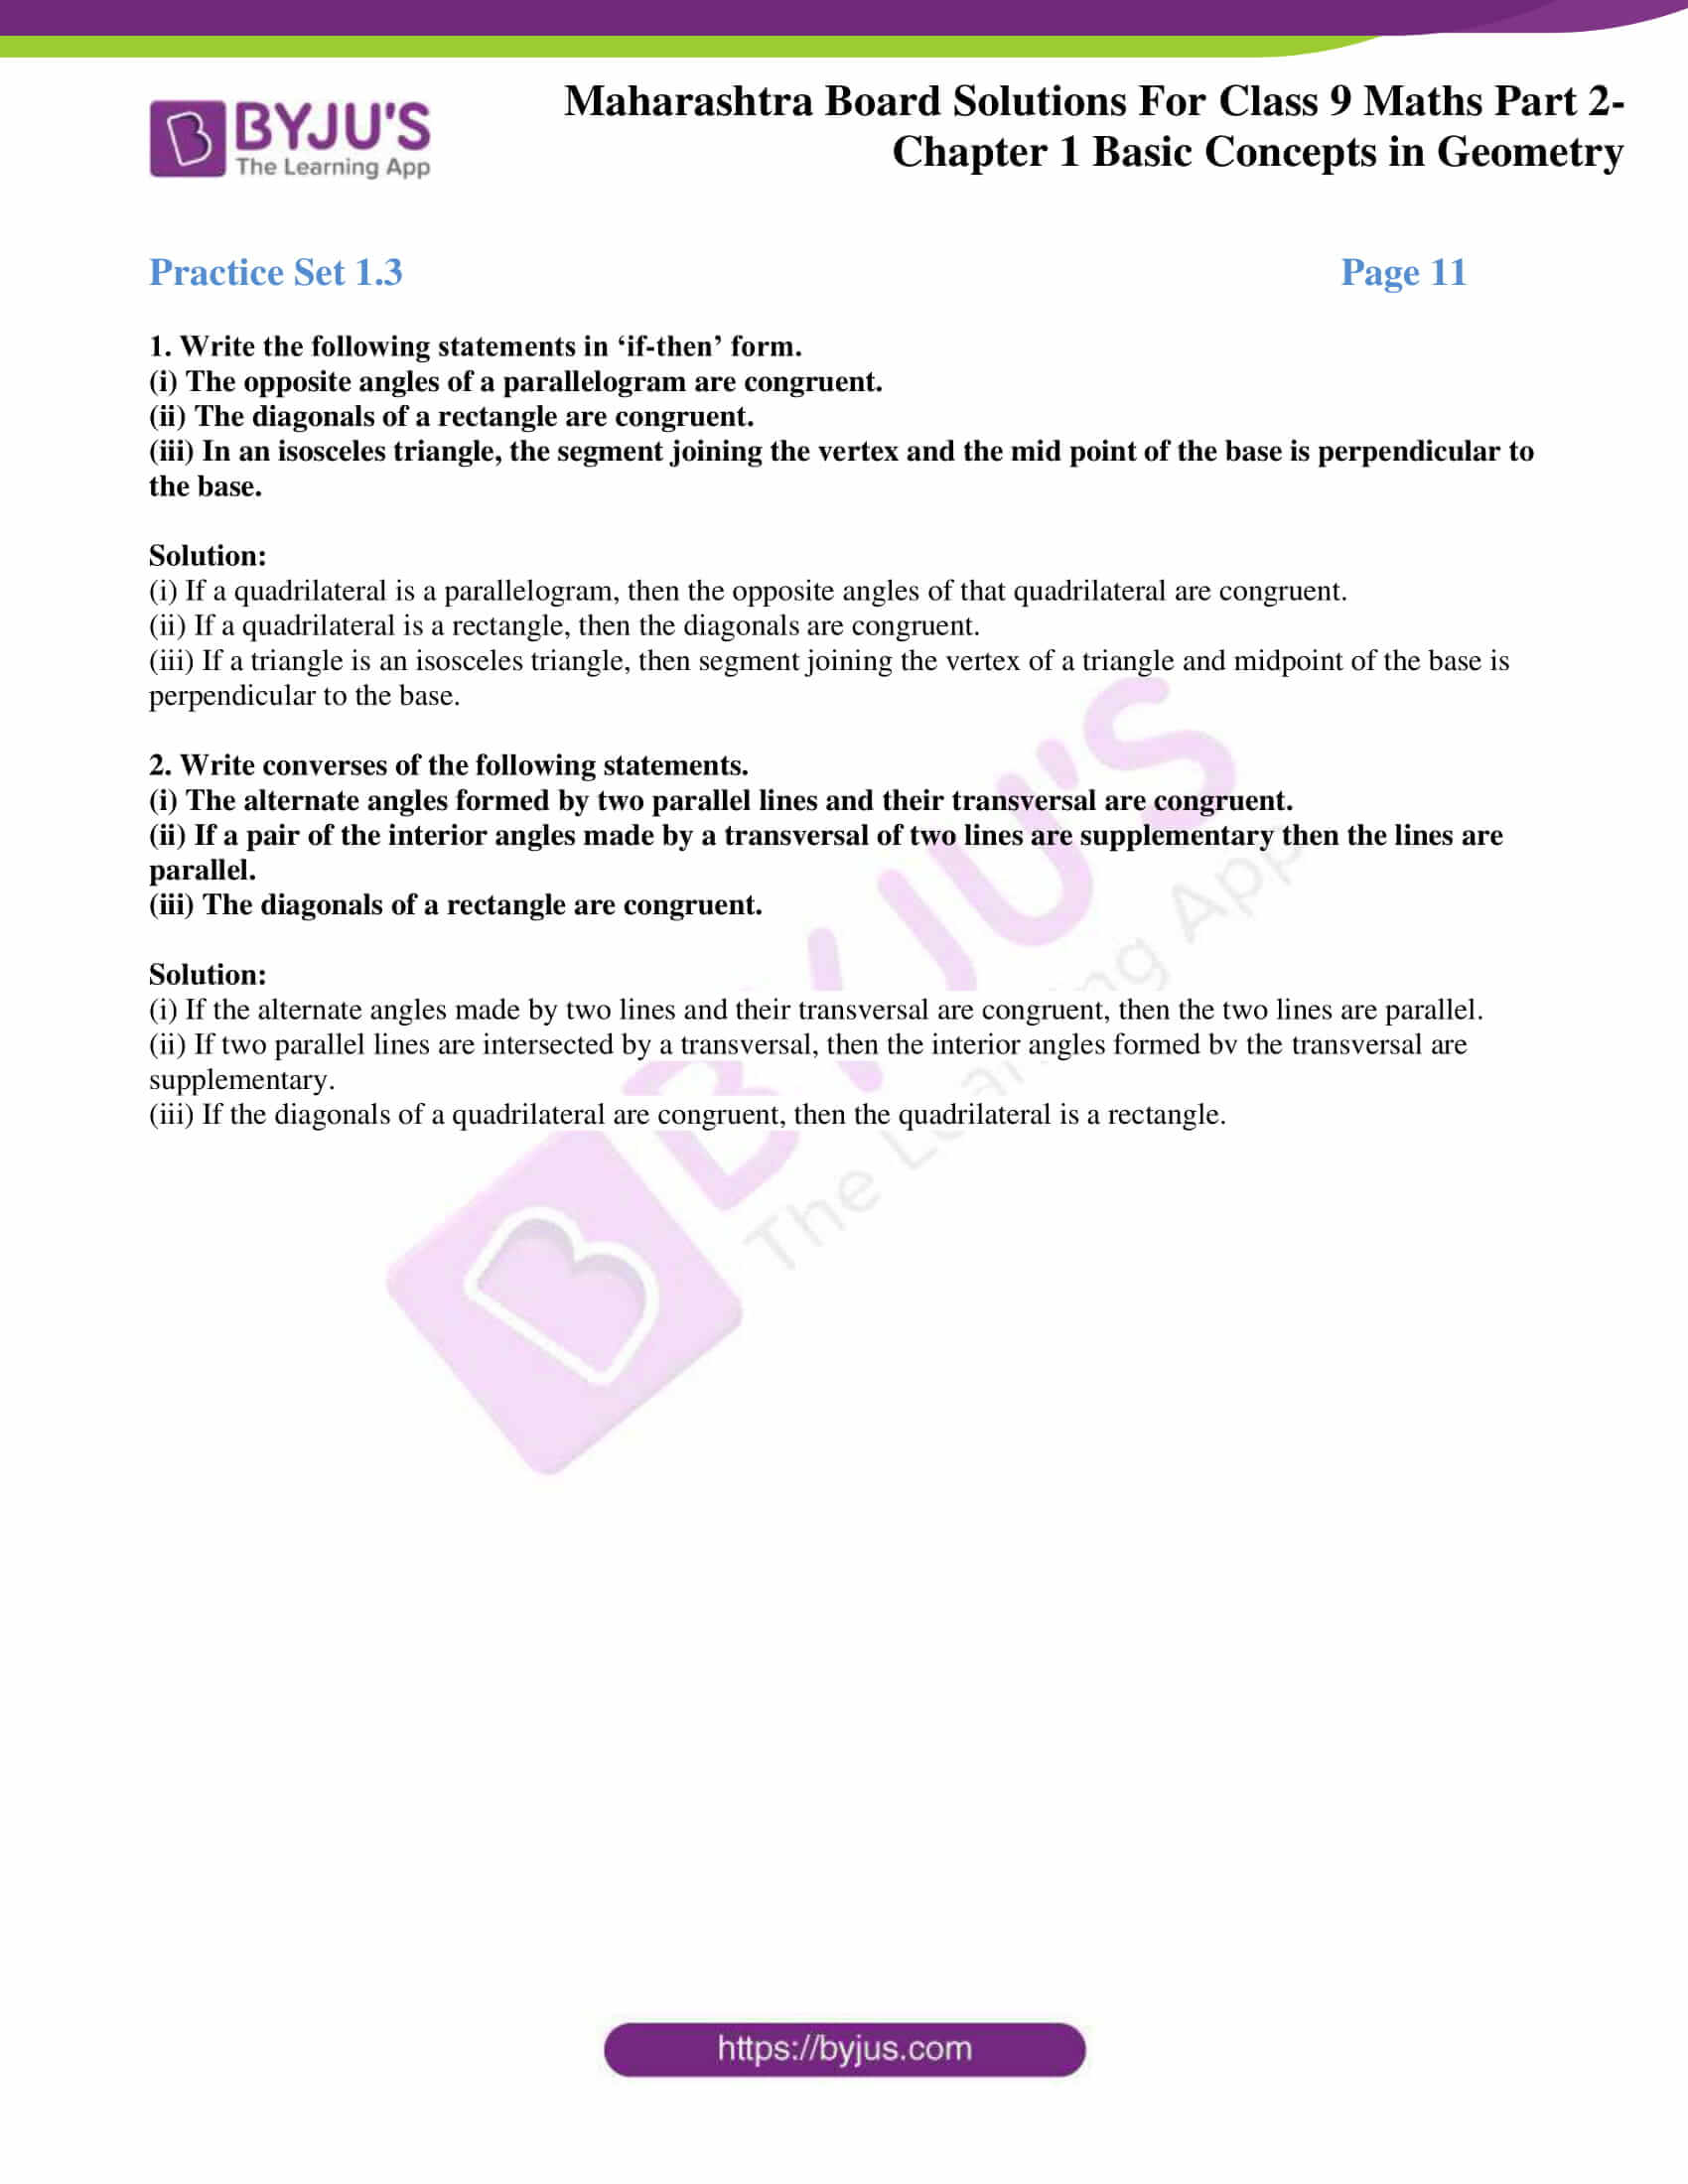 msbshse solutions for class 9 maths part 2 chapter 1 12